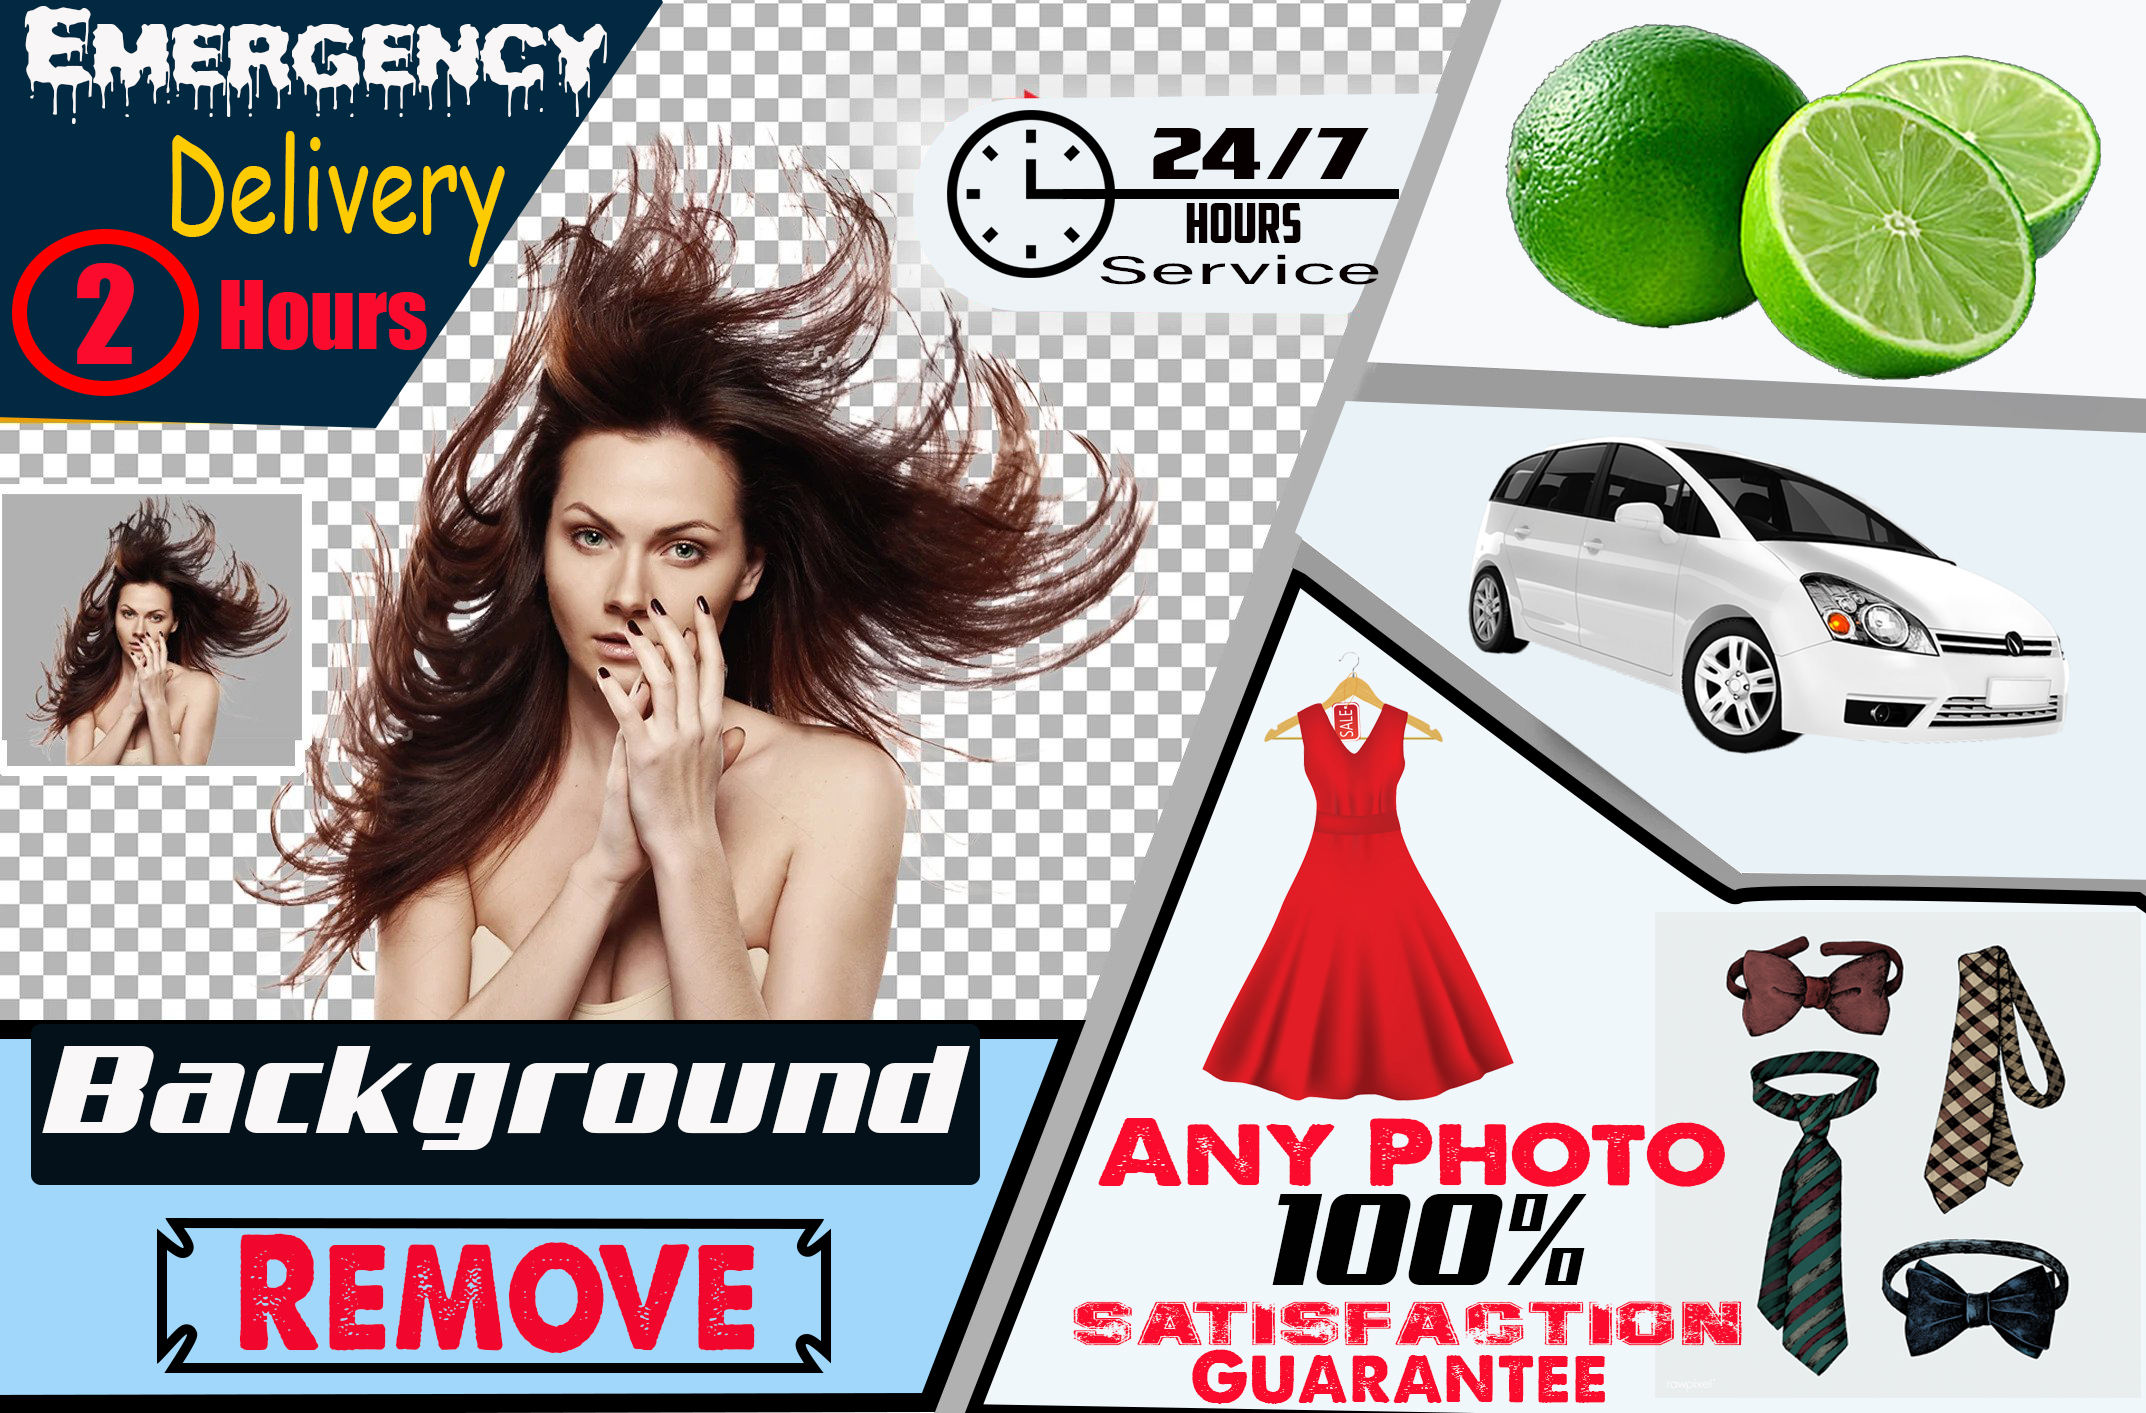 I will do background remove, retouch and resize your photo in 2 hour